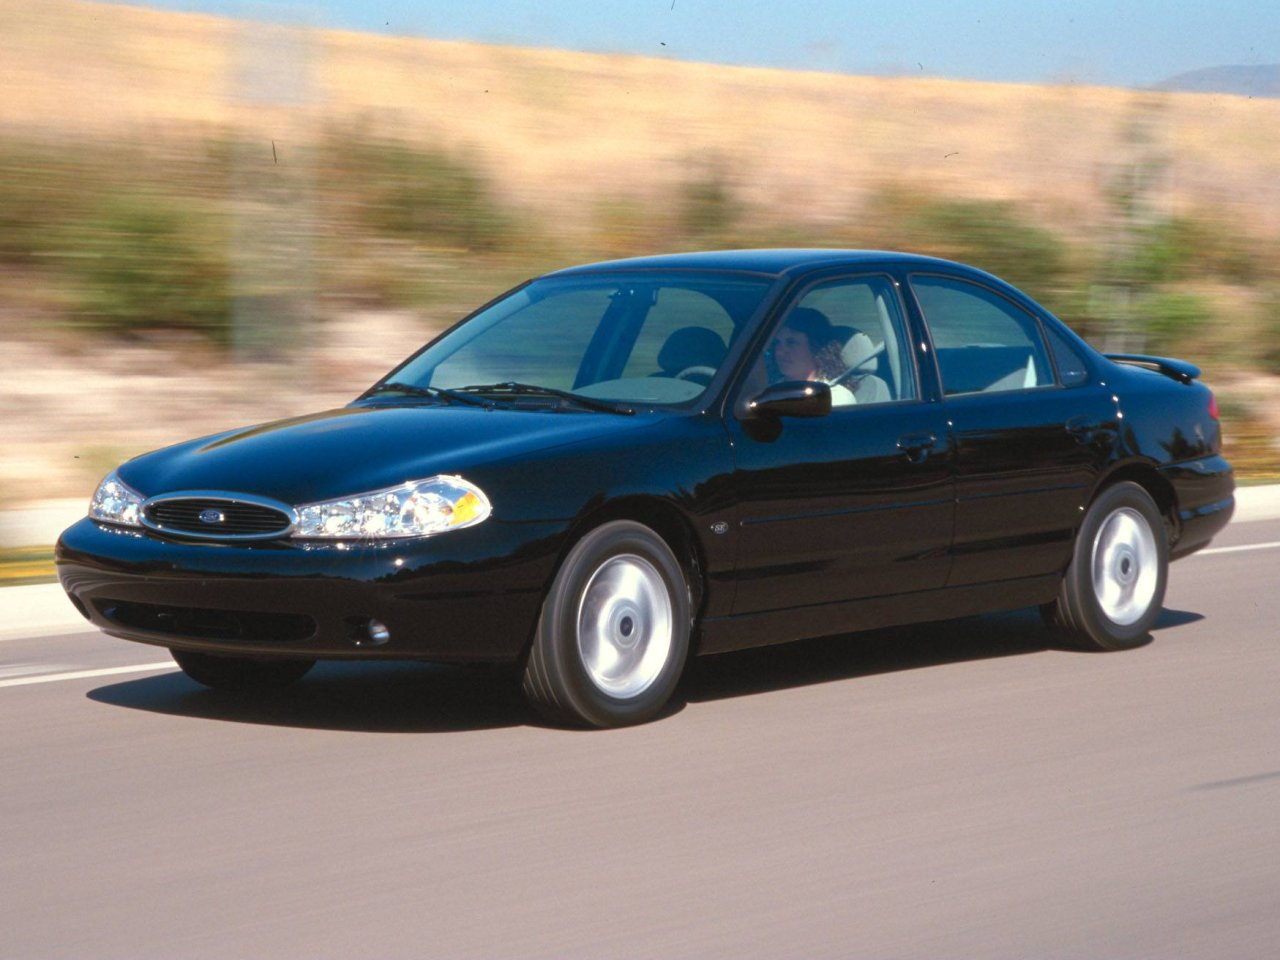 Ford Contour #2